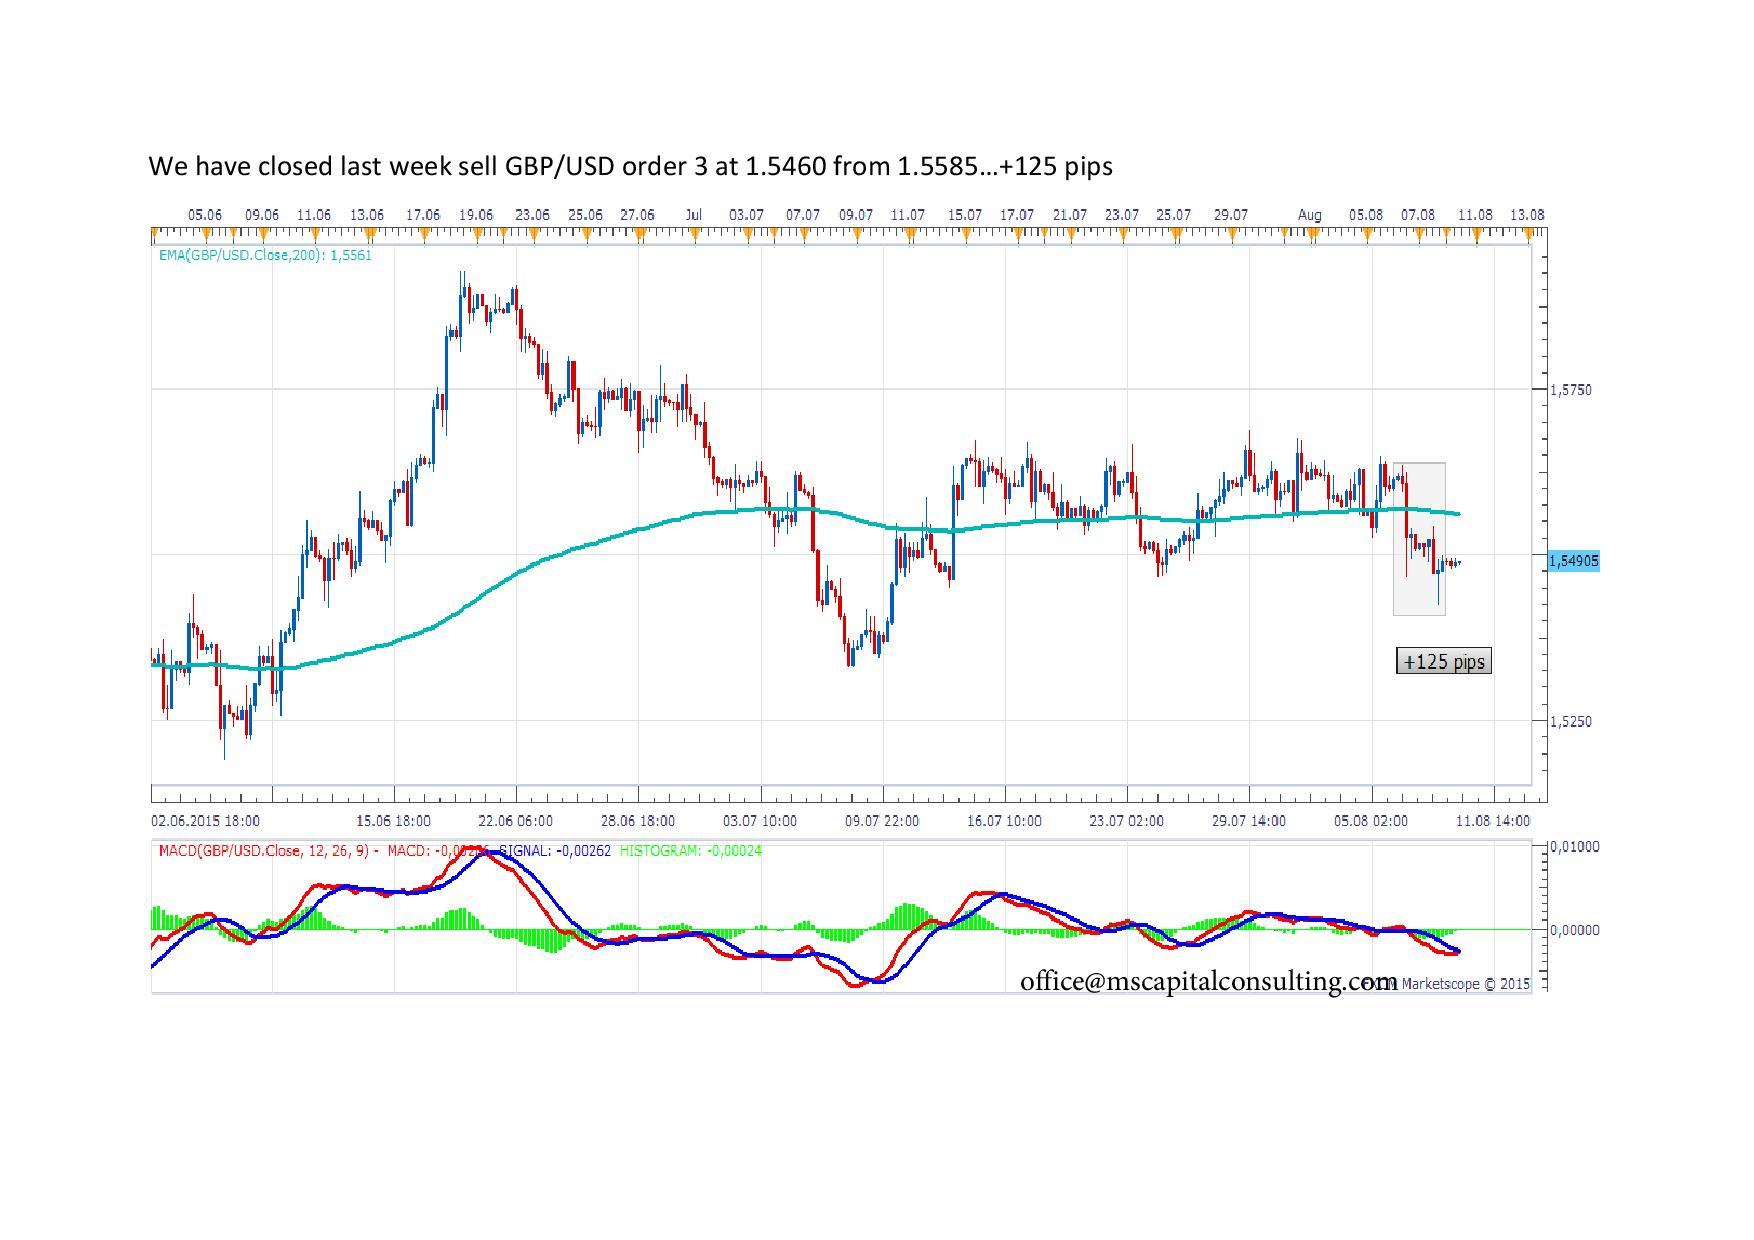 We have closed last week sell GBP3 page 001